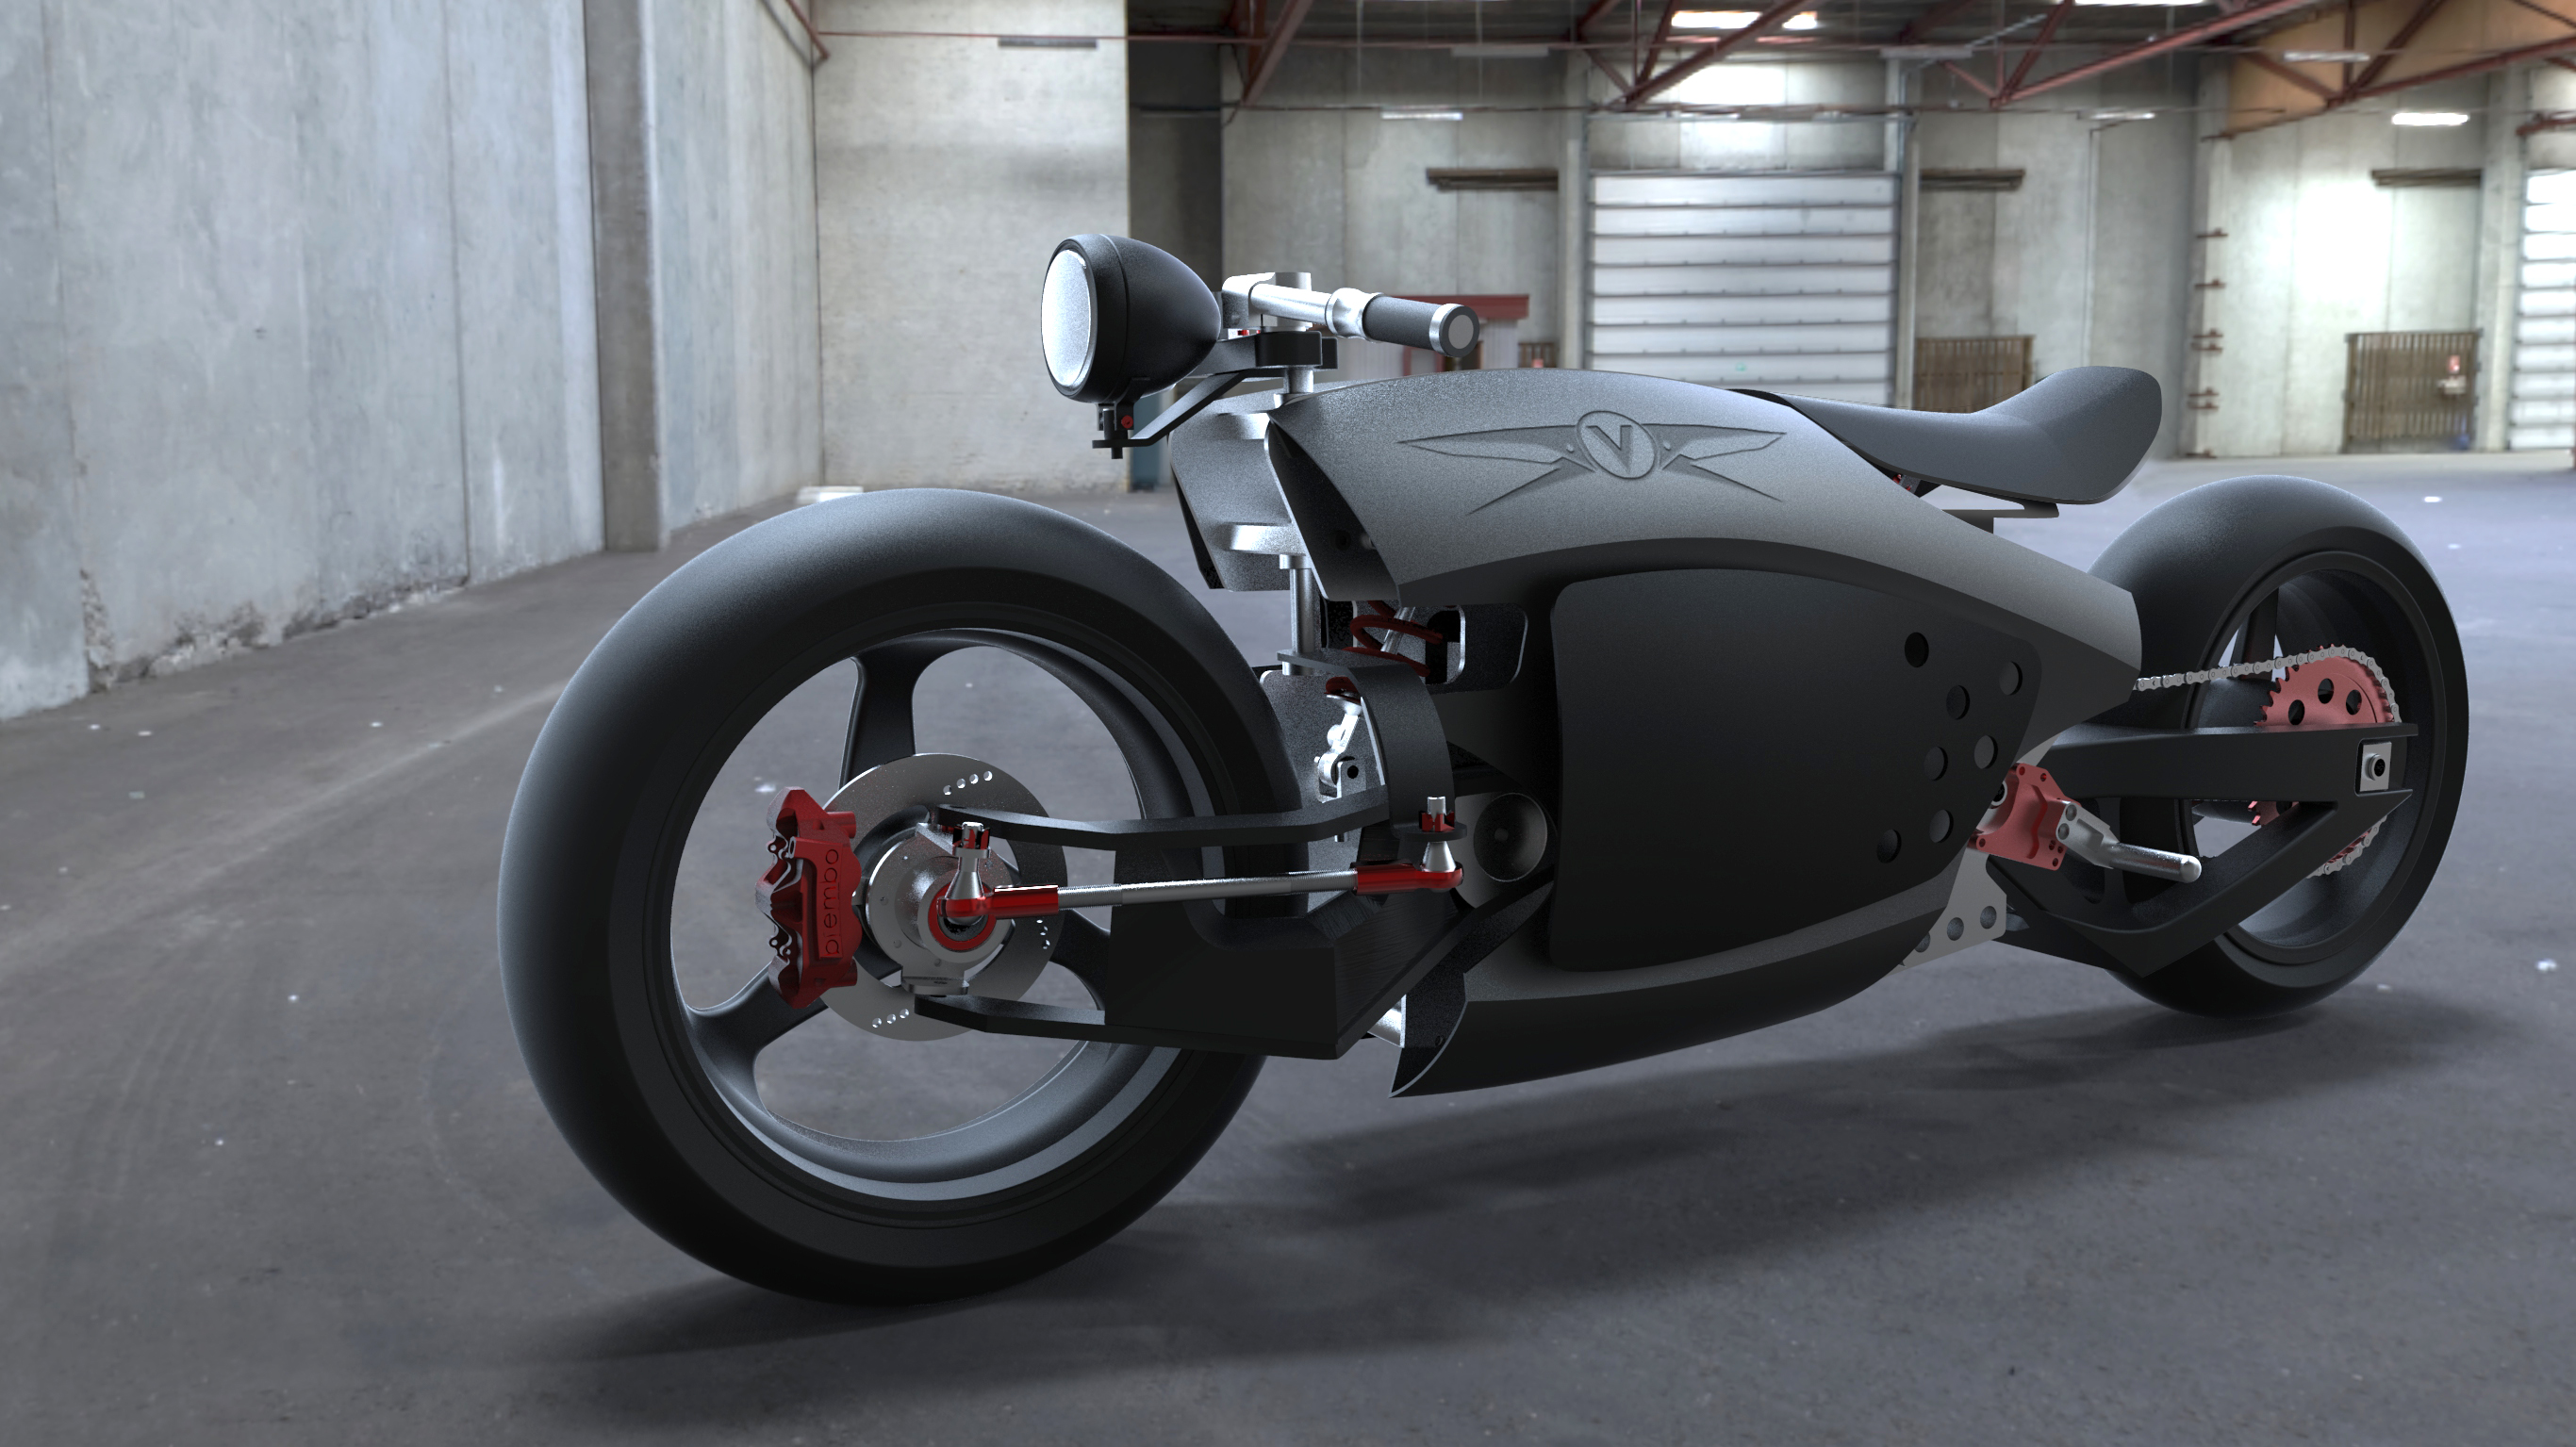 The Result Is An Electric Motorcycle That Possesses A Unique Character Collectable Heirloom Product Highly Customized Through Customer Involvement